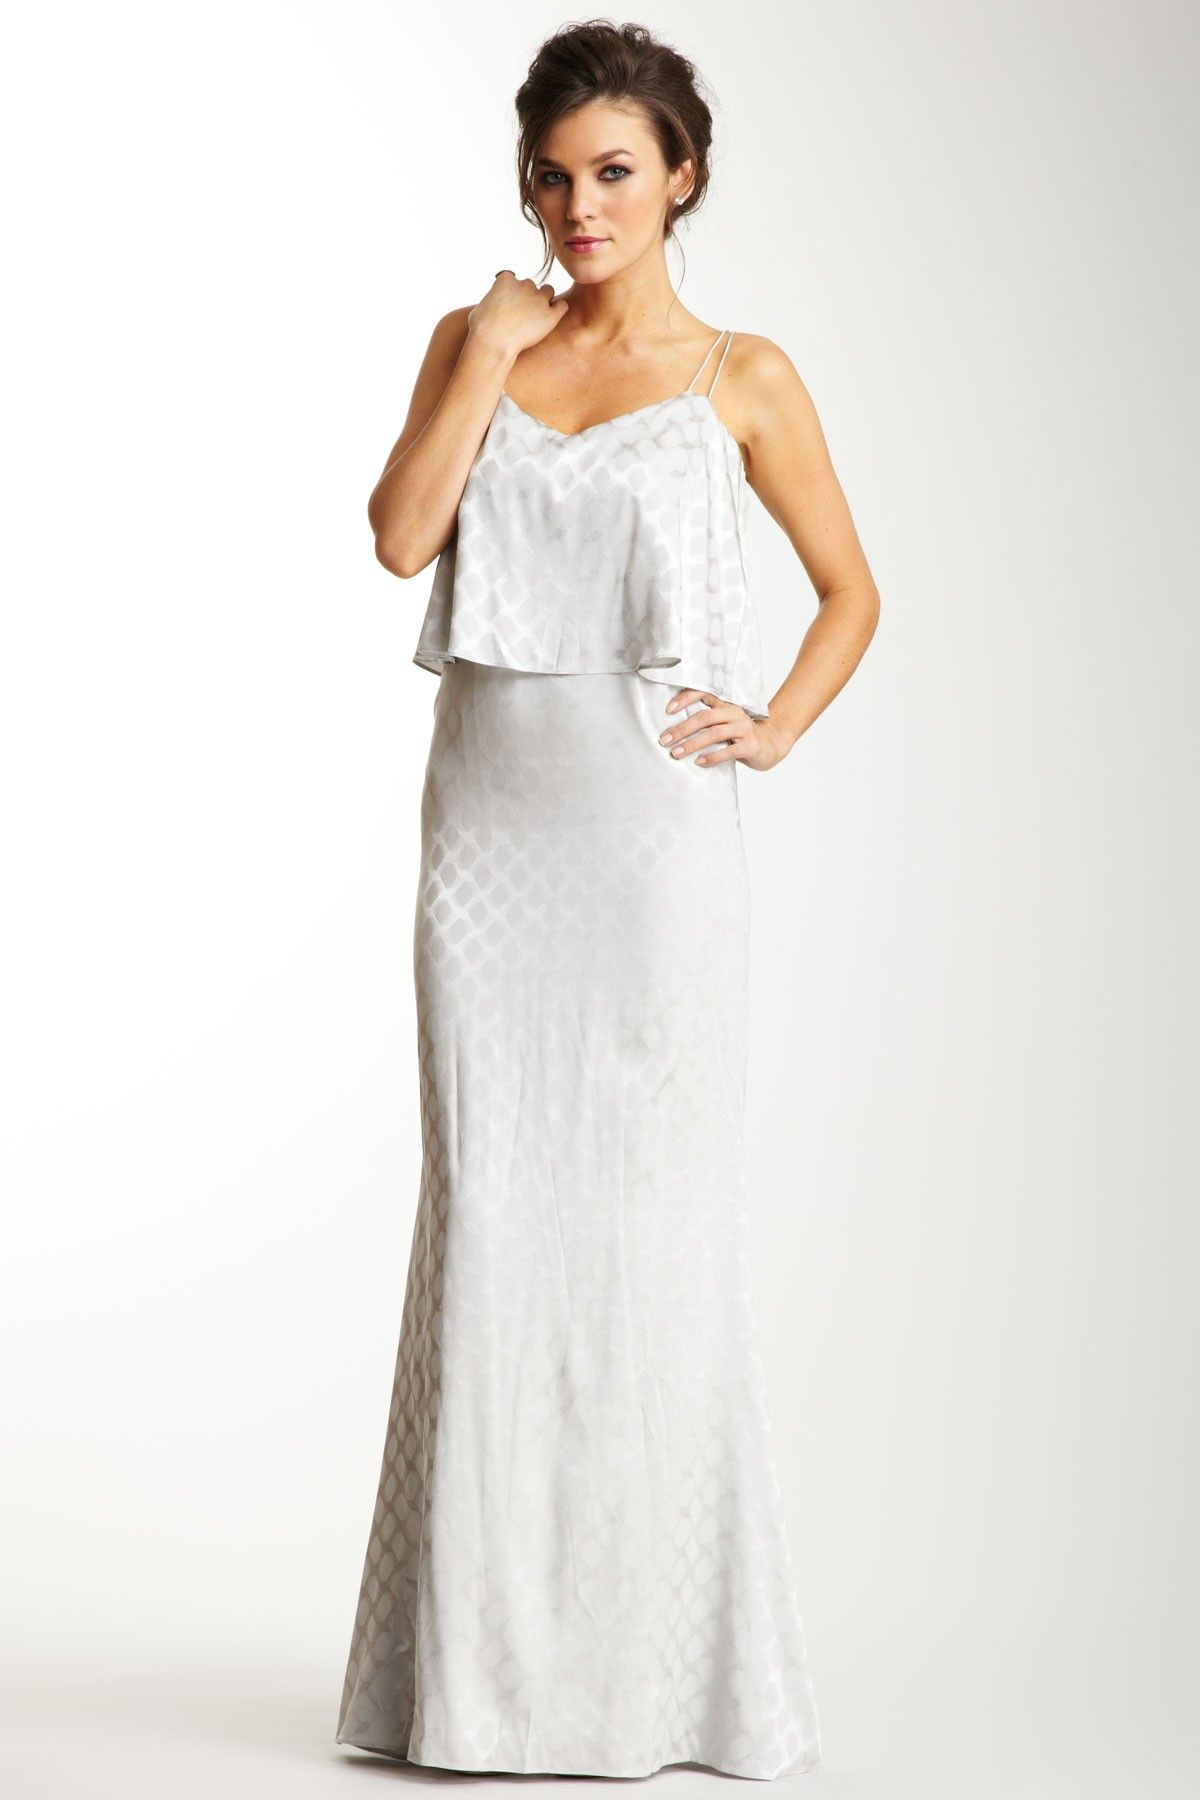 Halston tiered dress in white perfect for the reception wedding